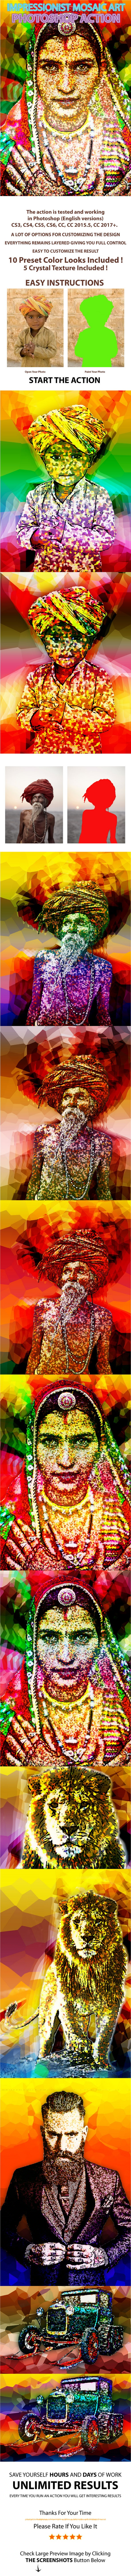 Impressionist Mosaic Art Photoshop Action - Photo Effects Actions